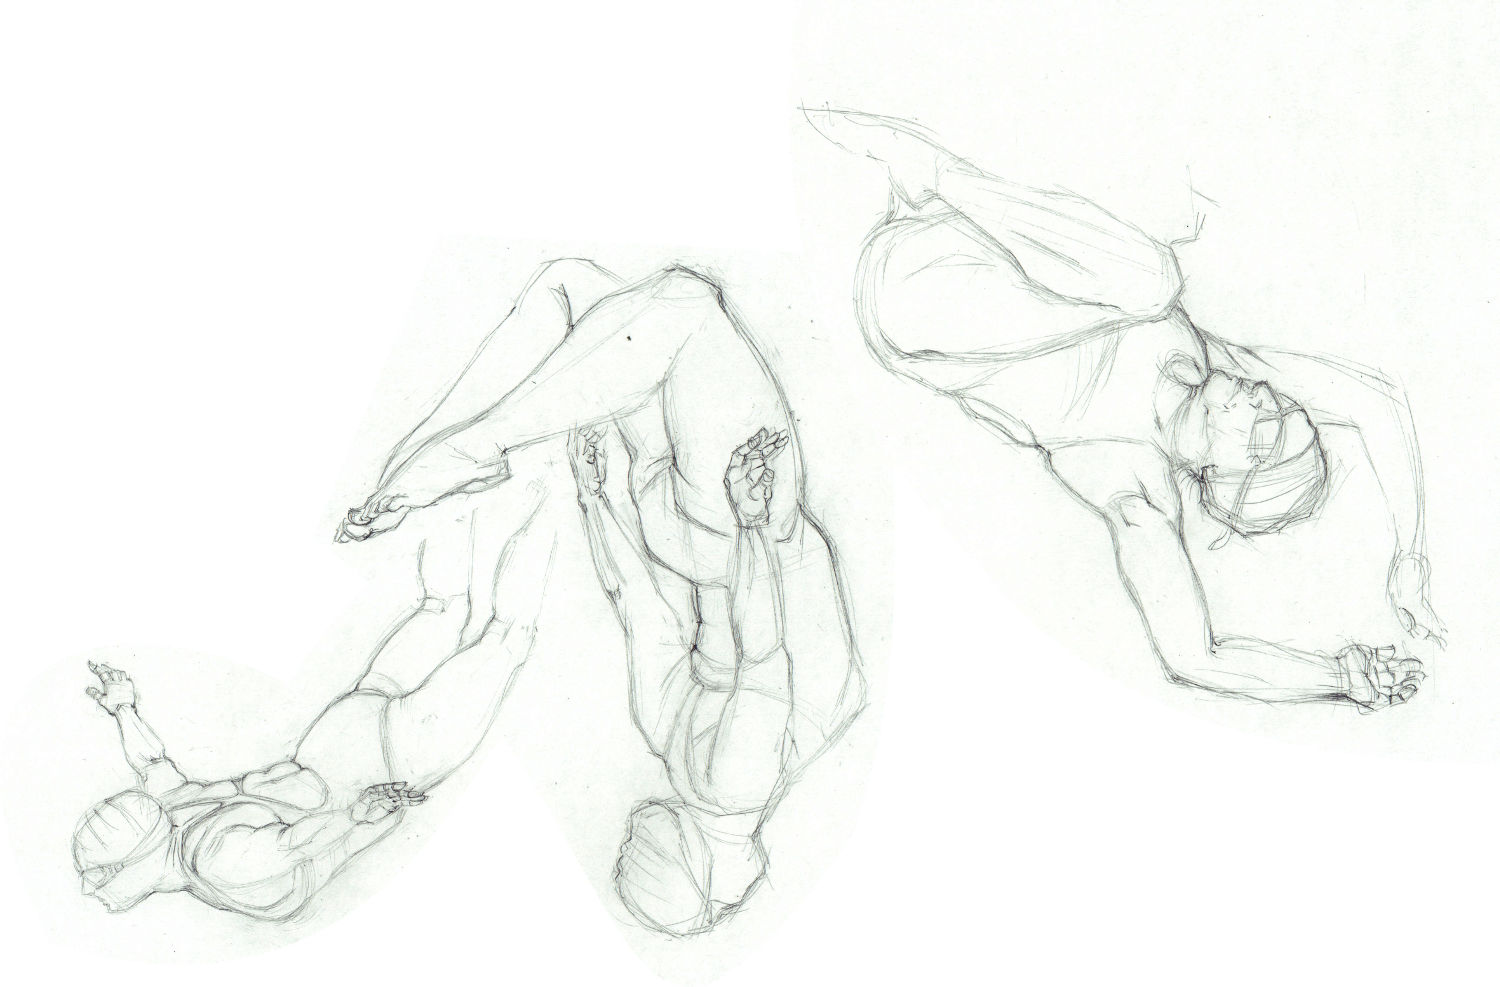 Wednesday swimmers - pencil sketches